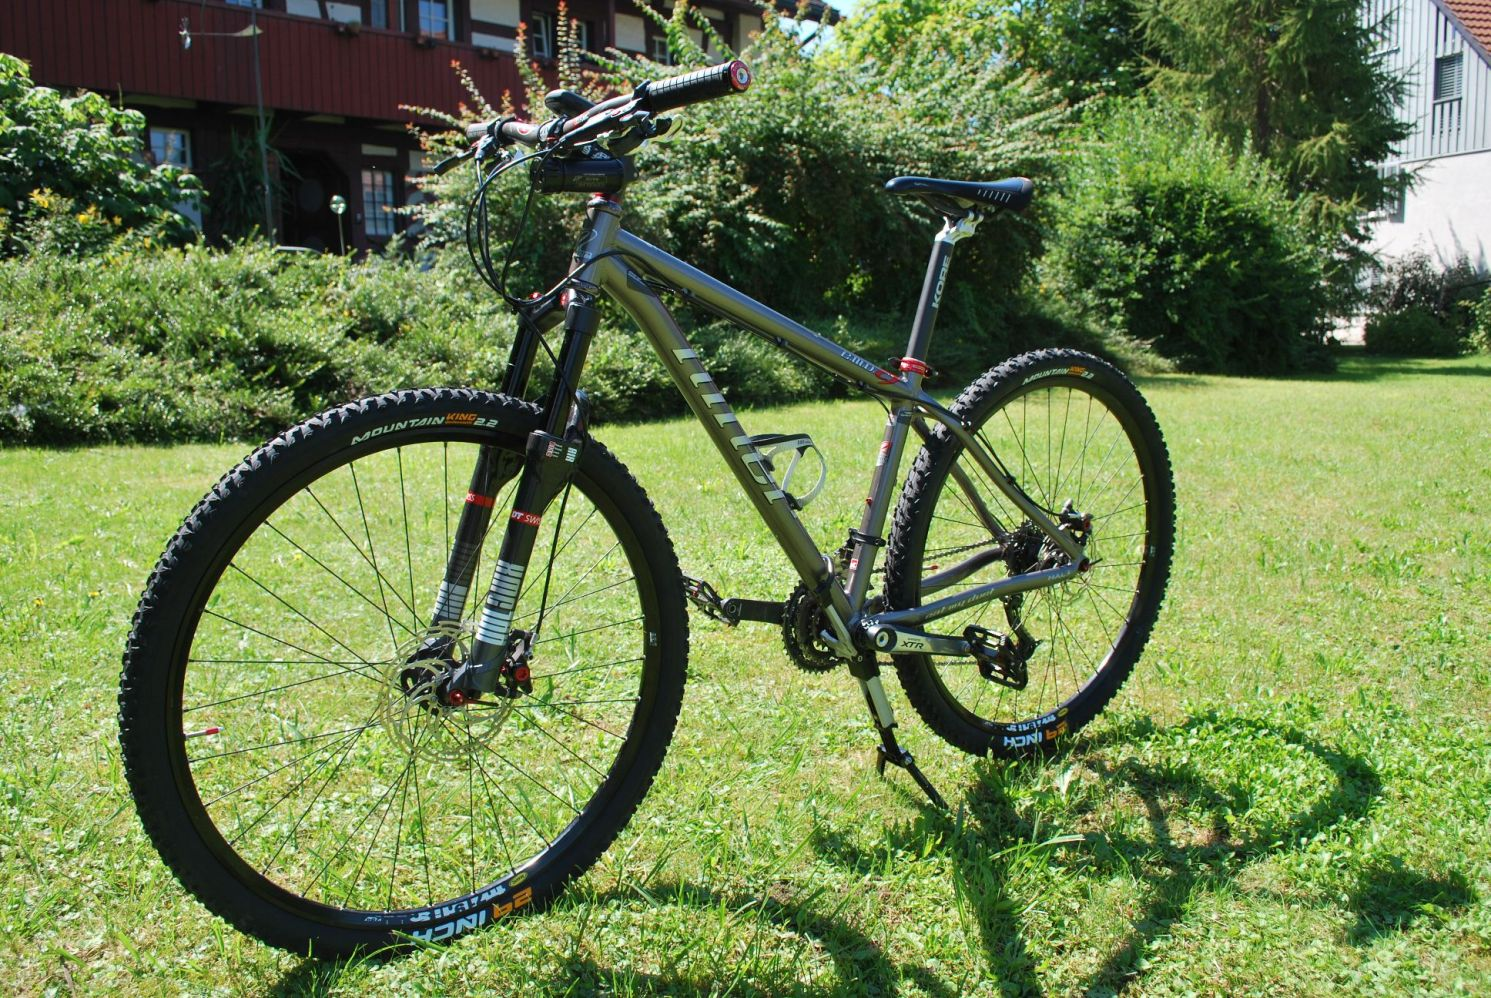 Post Pictures of your 29er-dsc_0684.jpg